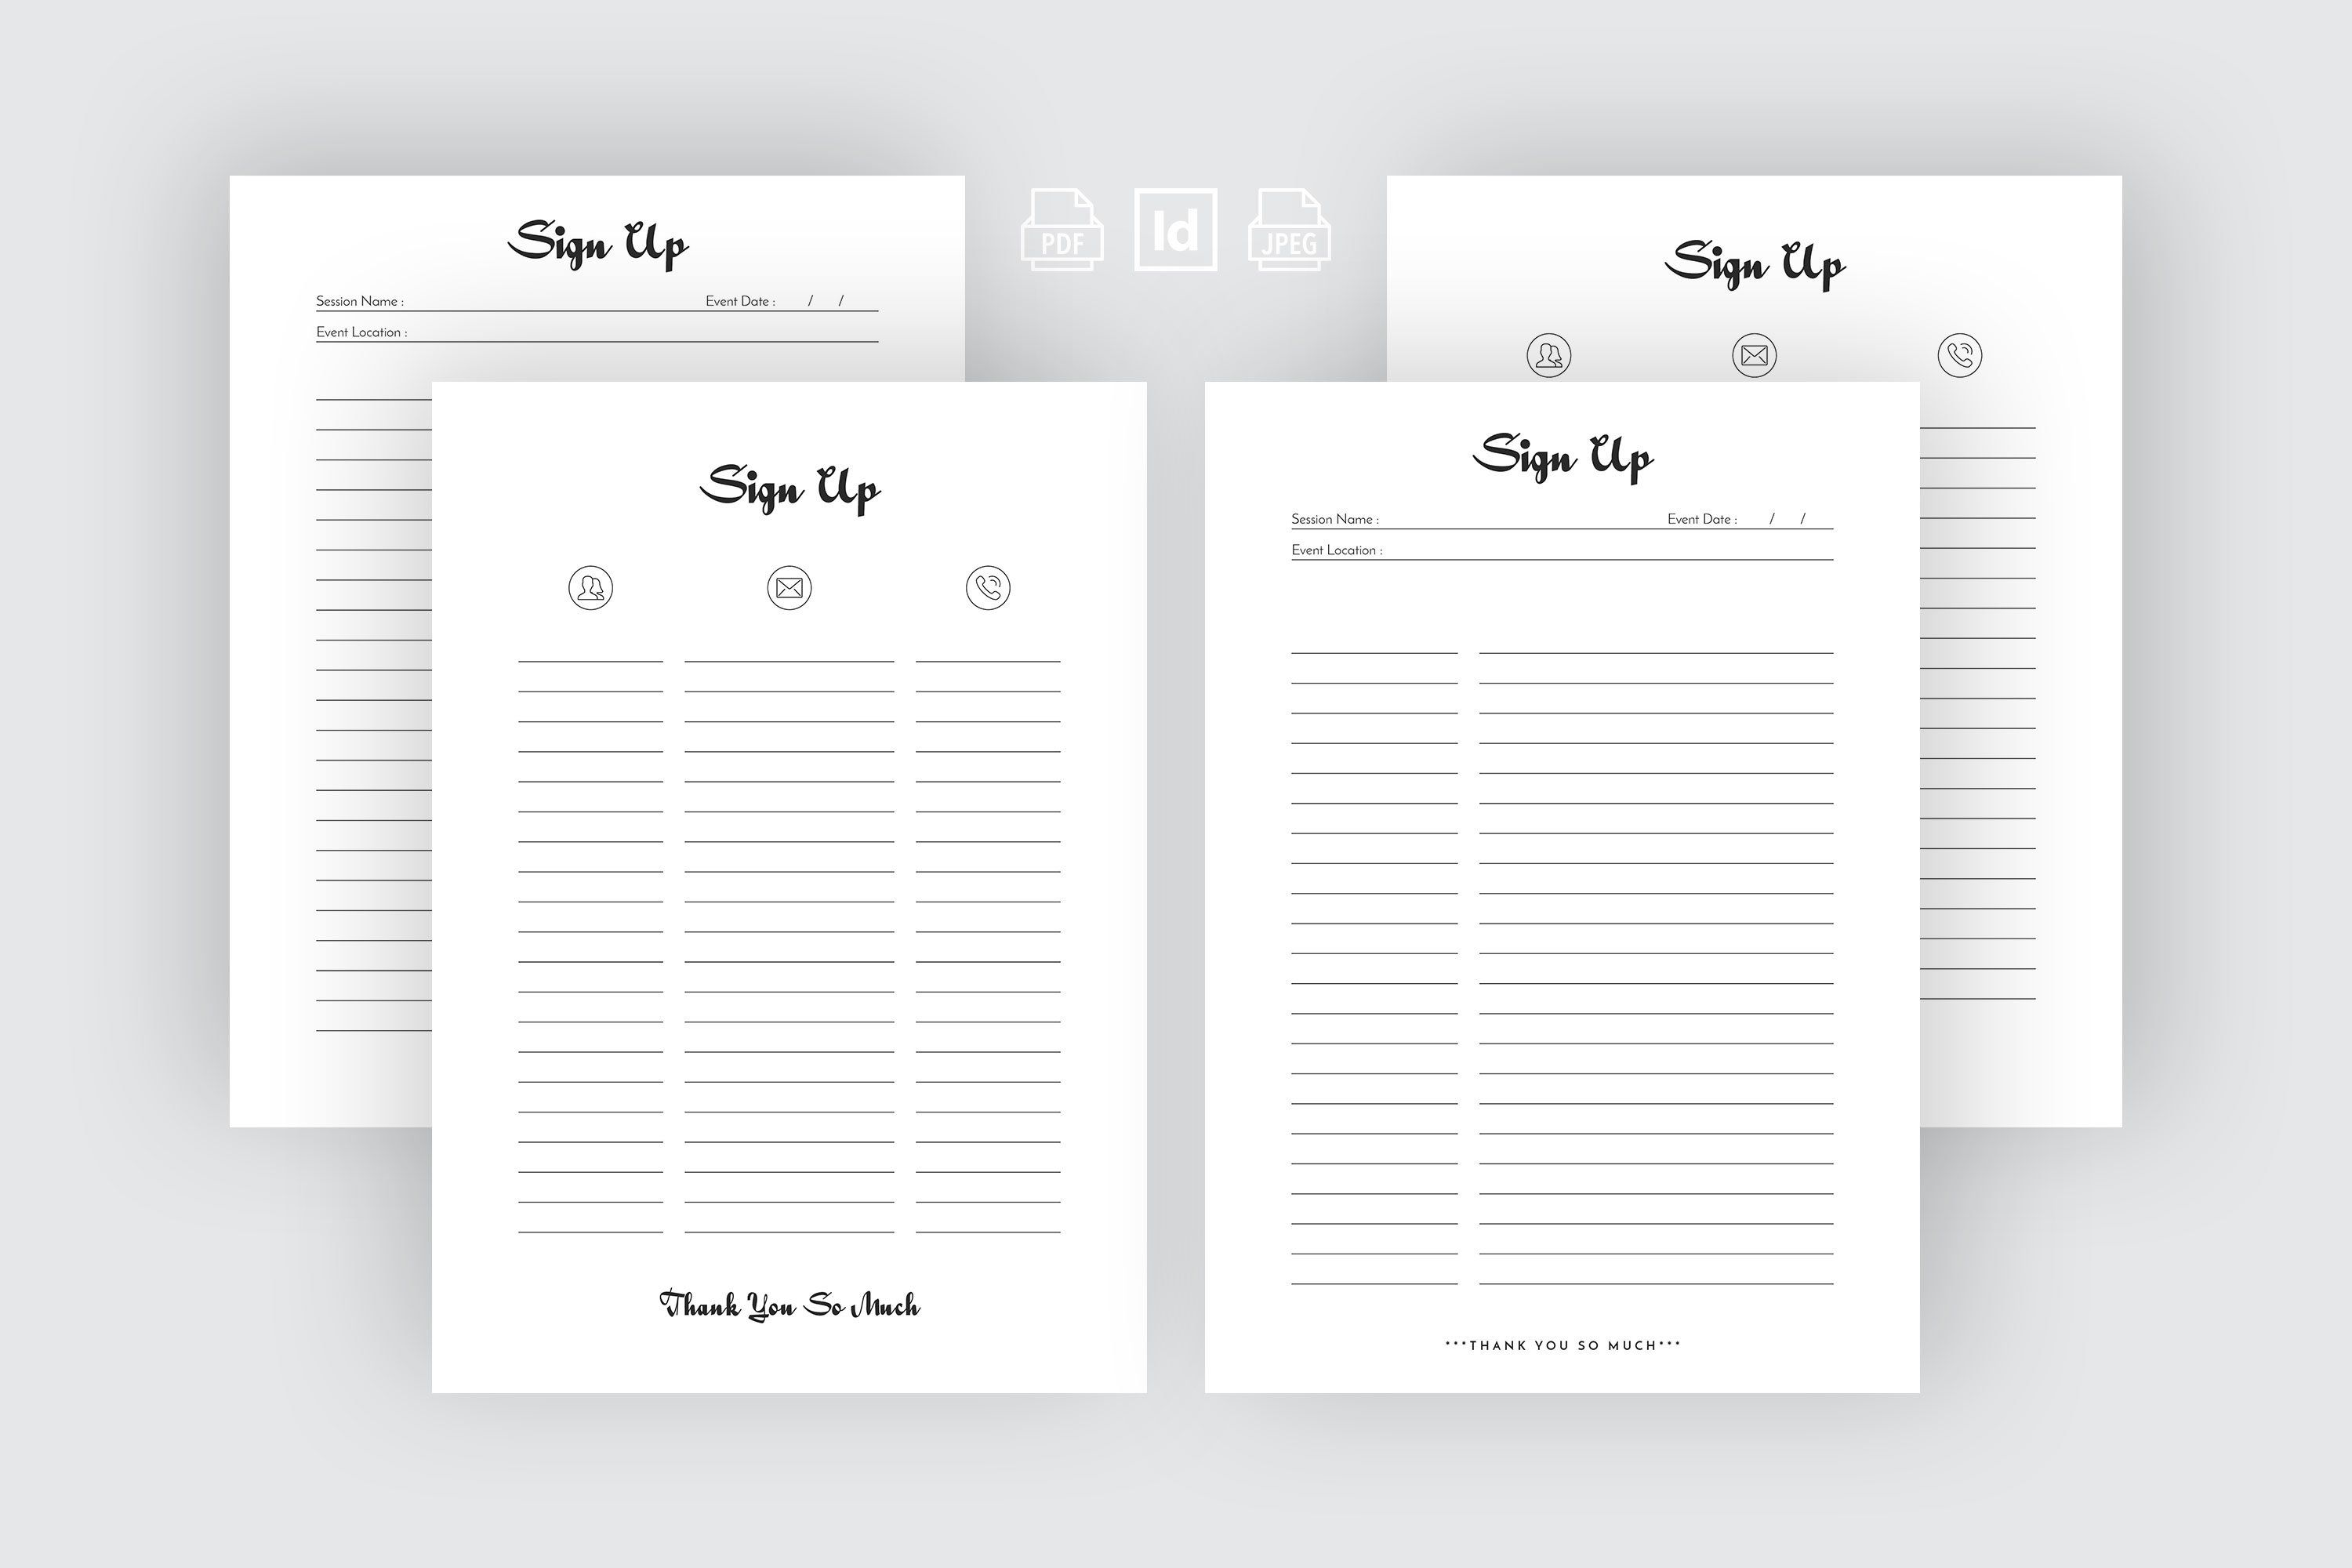 Email Sign Up Form Template Lovely Email Signup Sheet Template Lively Sign Up Sheets 58 Free Sign Up Sheets Sign In Sheet Event Sign